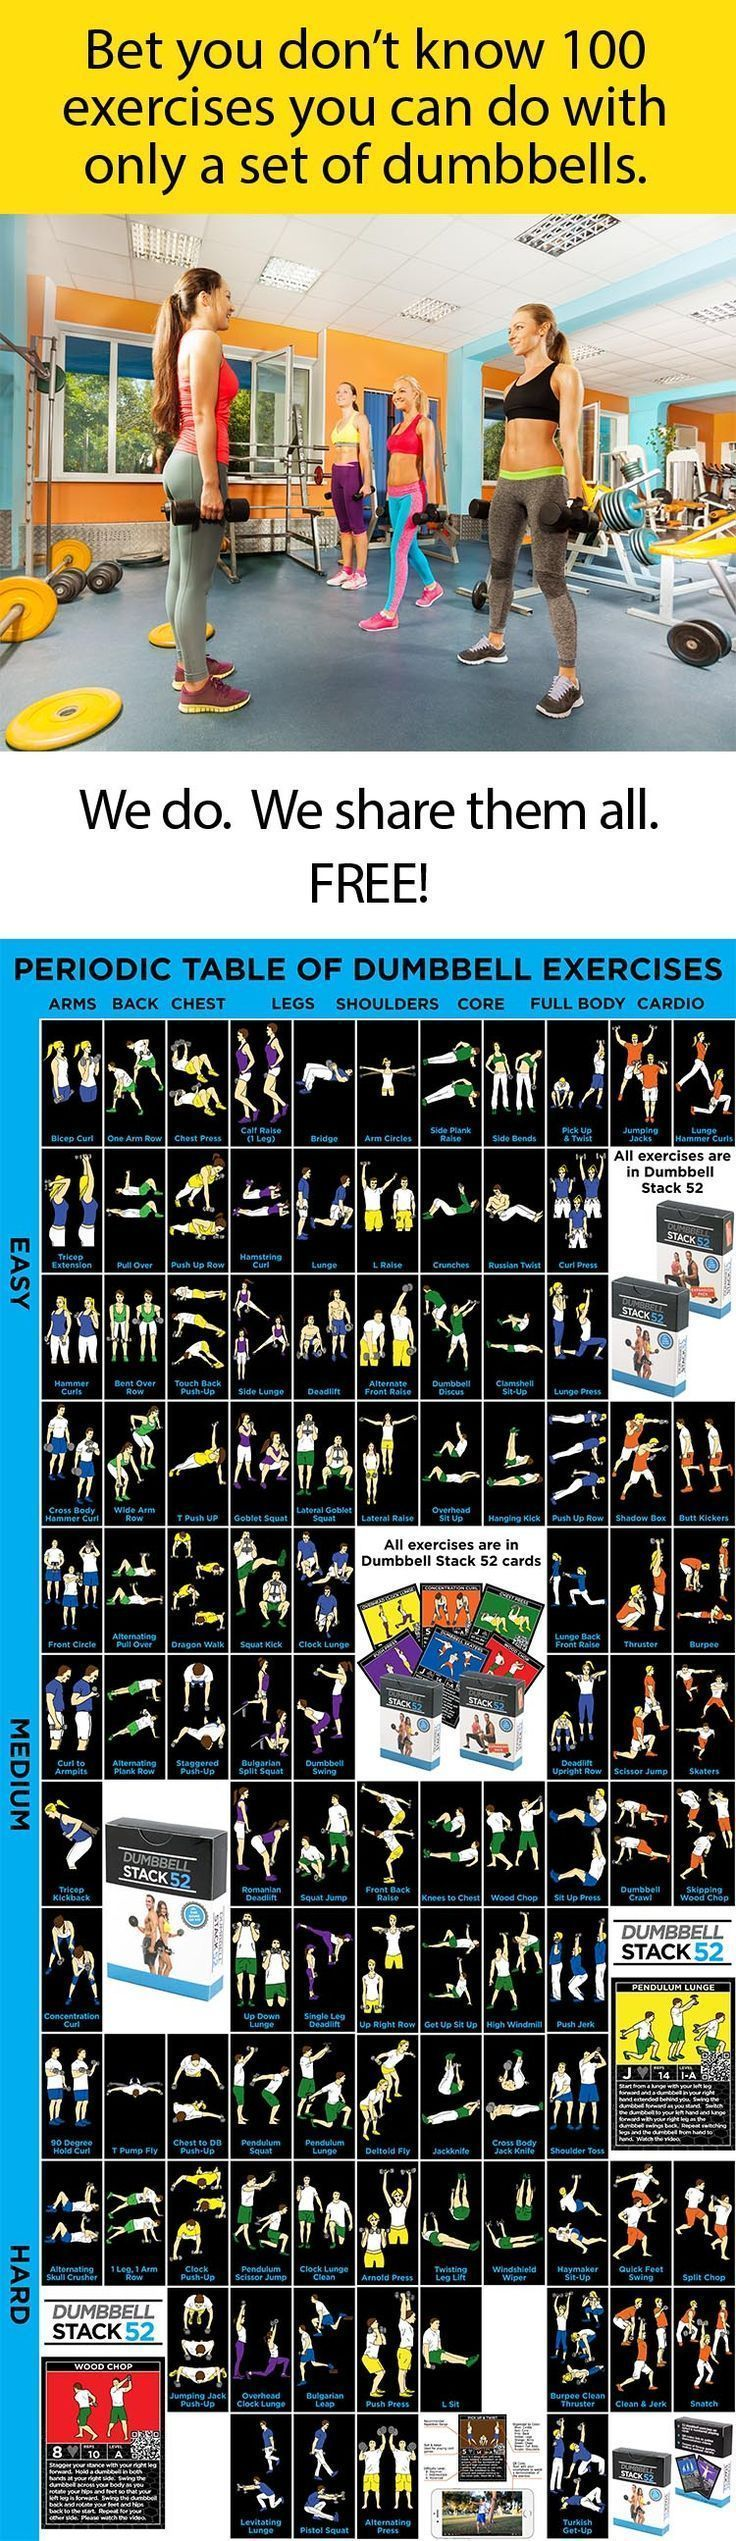 104 Diffe Dumbbell Exercises Organized By Muscle Group And Difficulty Click On Any Ilration For A Video Demonstration Of The Exercise